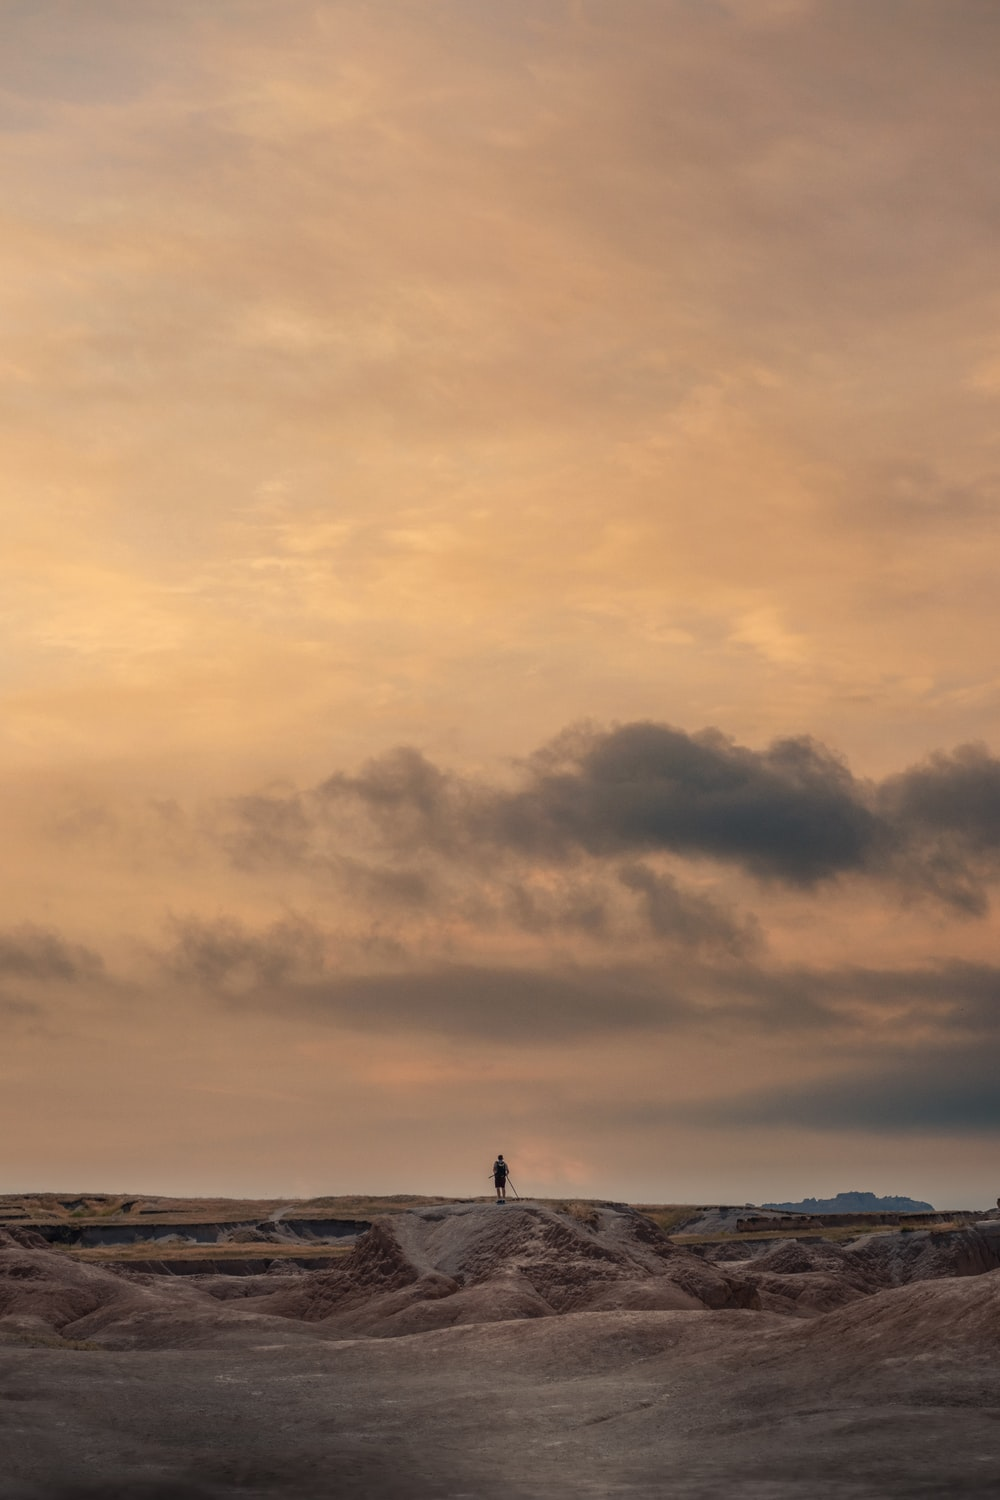 person standing on beach under cloudy sky during daytime